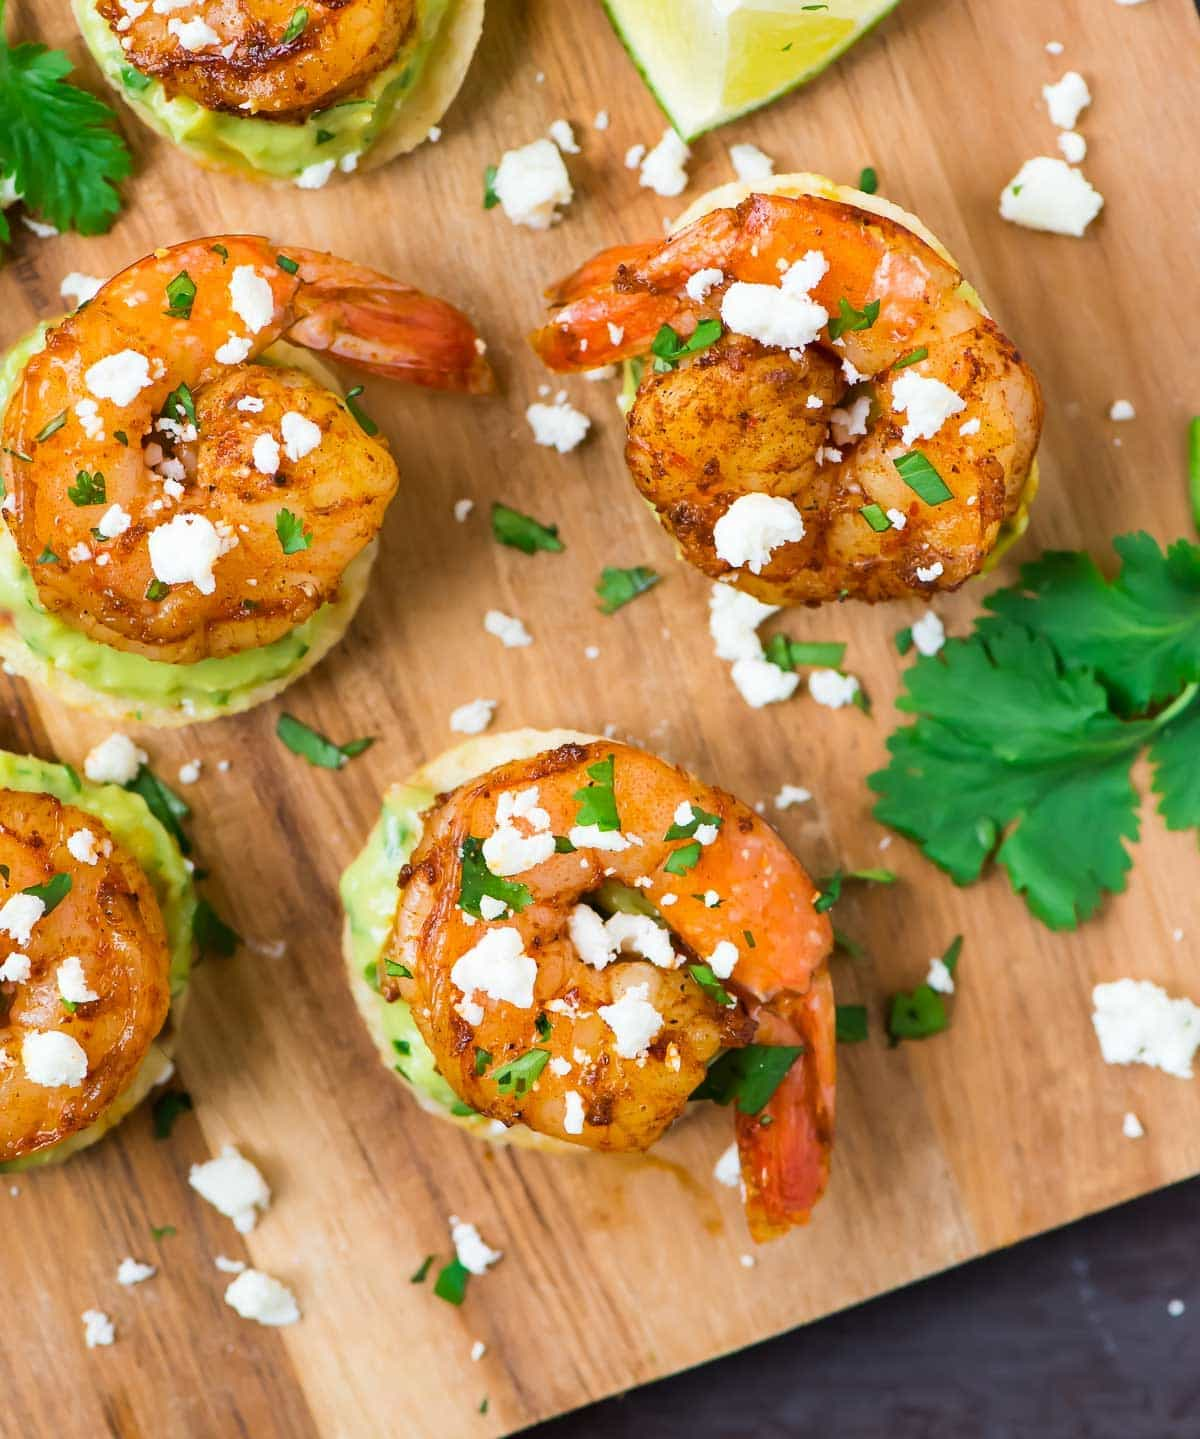 Spicy Guacamole Shrimp Bites. Easy, addictive appetizer recipe with shrimp, avocado, and tortilla chips. Recipe at wellplated.com | @wellplated